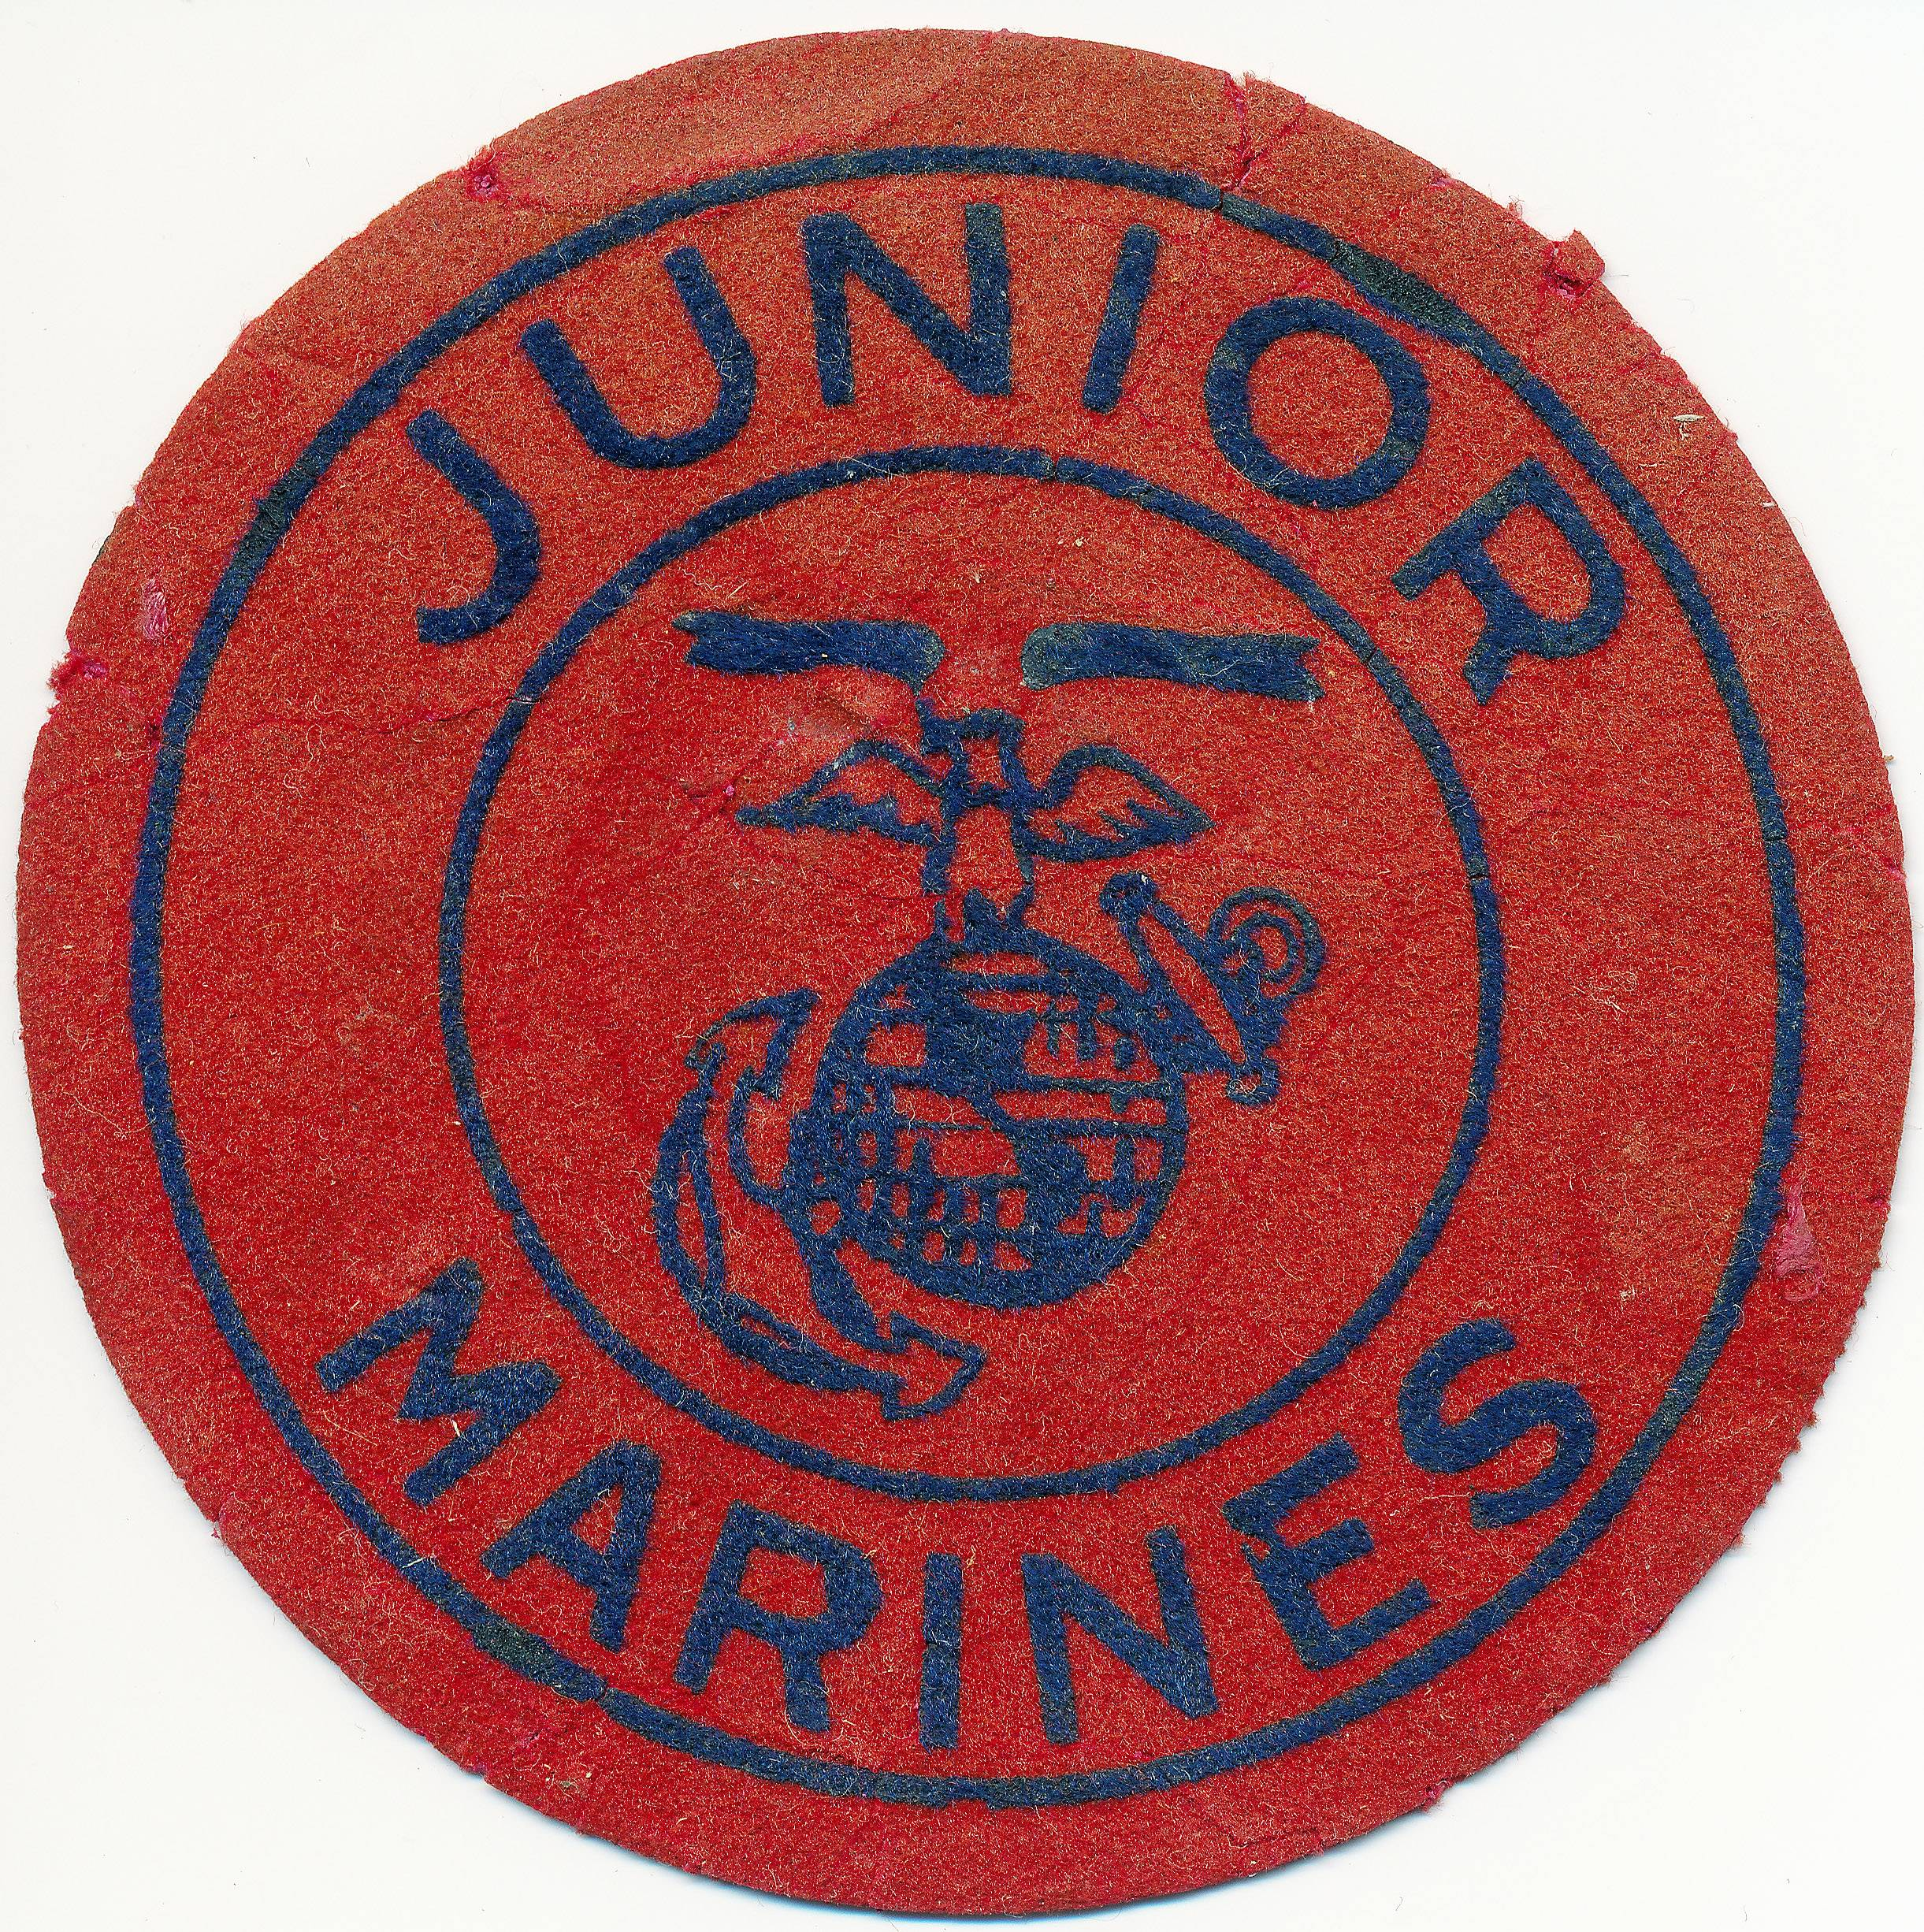 "A neighborhood group of boys in Chicago, the Junior Marines participated in parades and rallies during World War II. This patch belongs to retired Air Force Reserve Brig. Gen. Walter ""Gibby"" Vartan, 85, of Chicago."